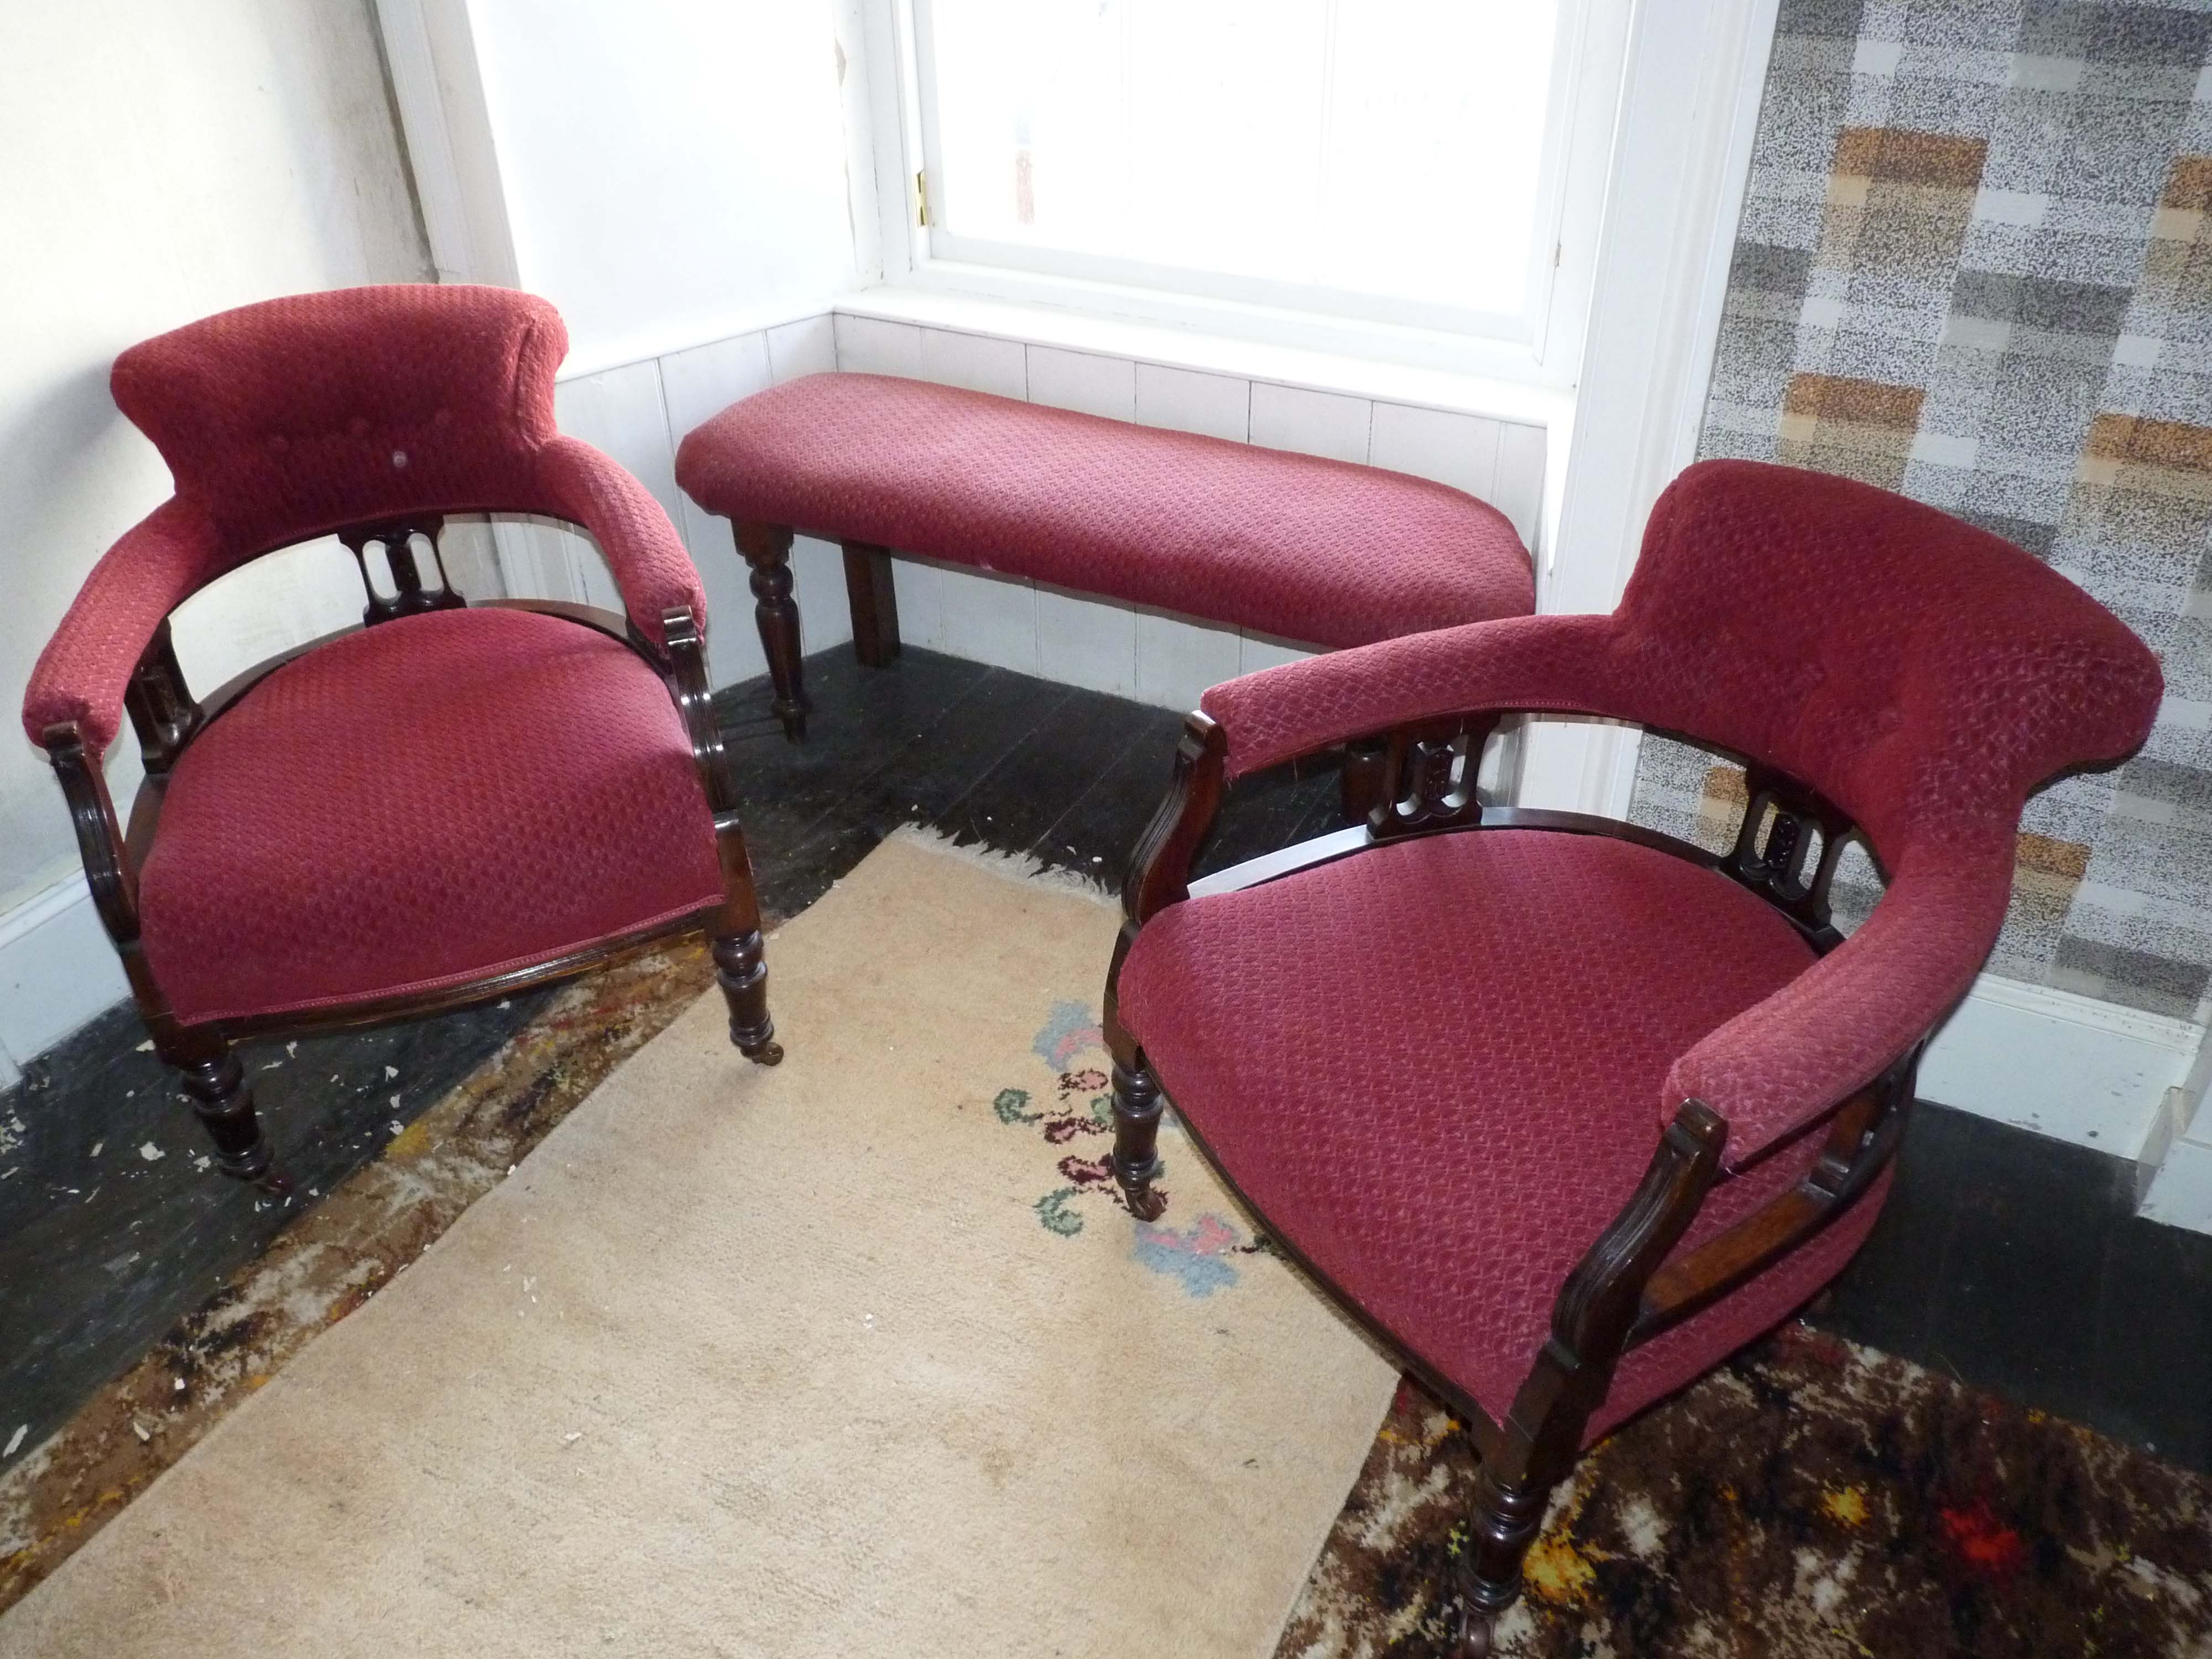 tub chair covers for sale ozark trail folding furniture 16th june 11 orkney mart